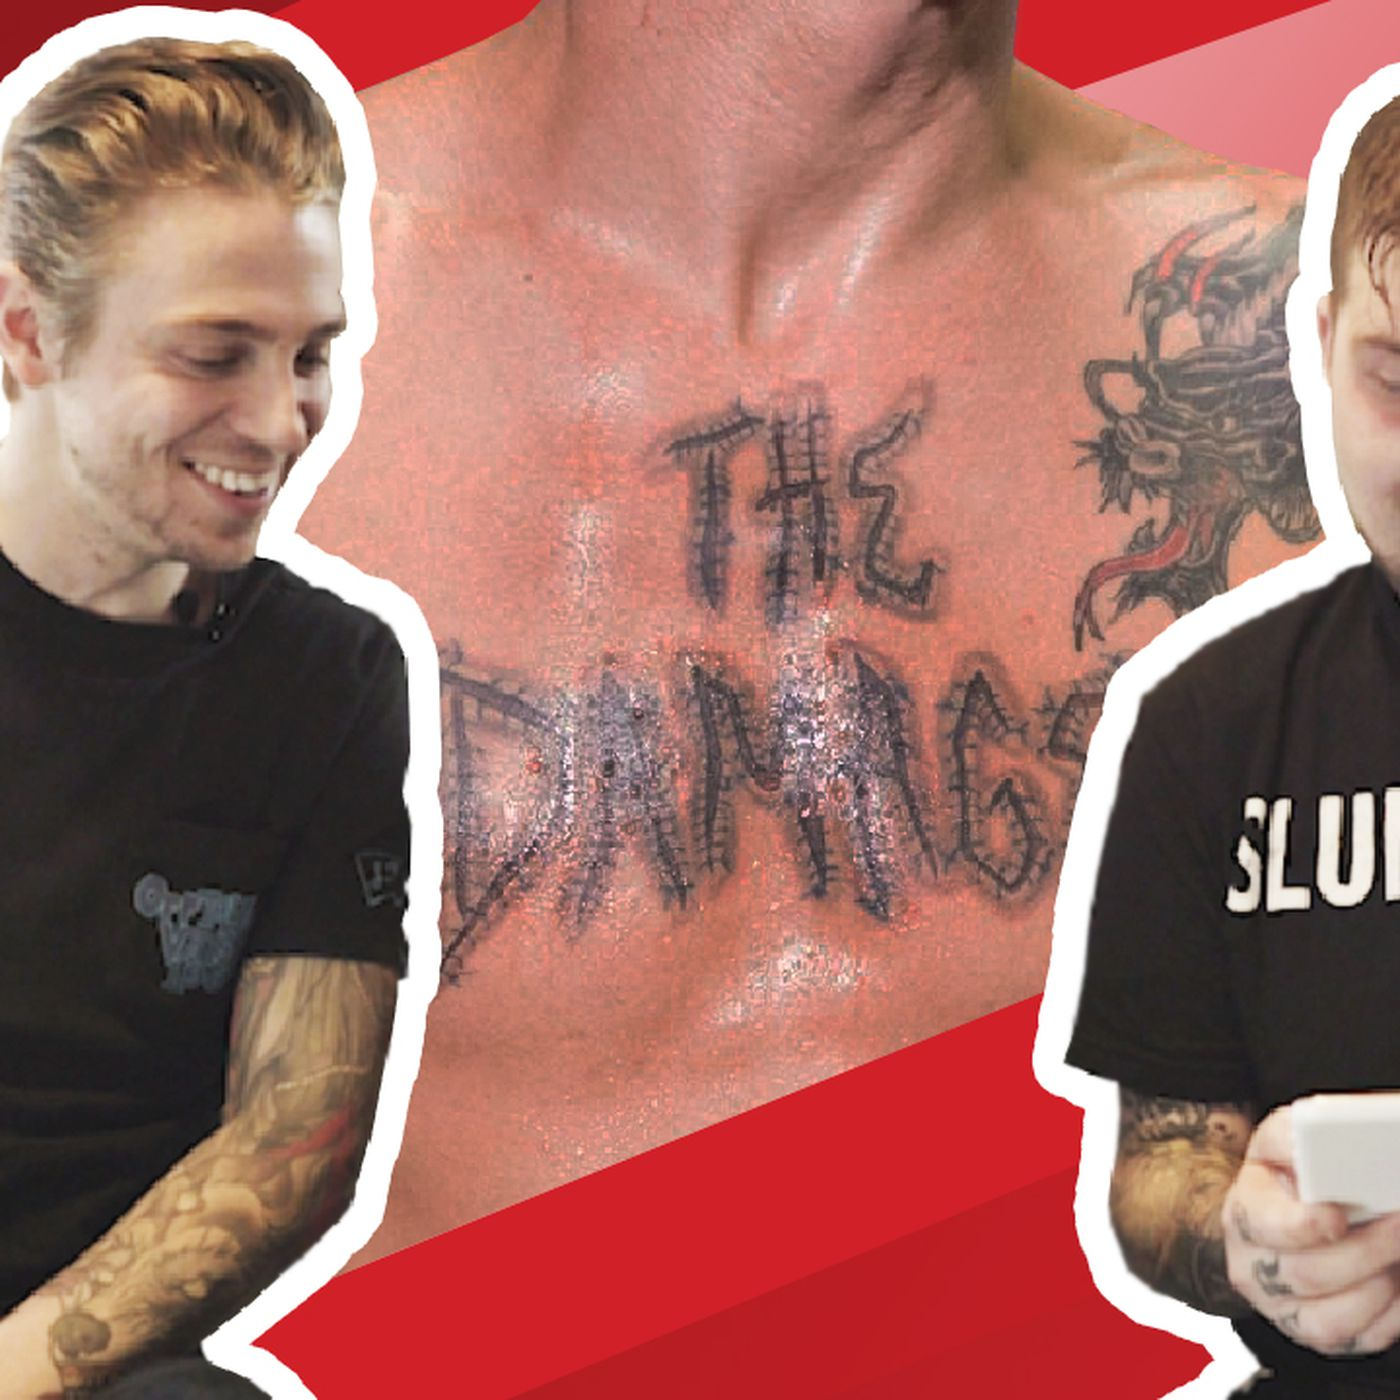 Video Tattoo Artists React To Ufc Fighters Tattoos